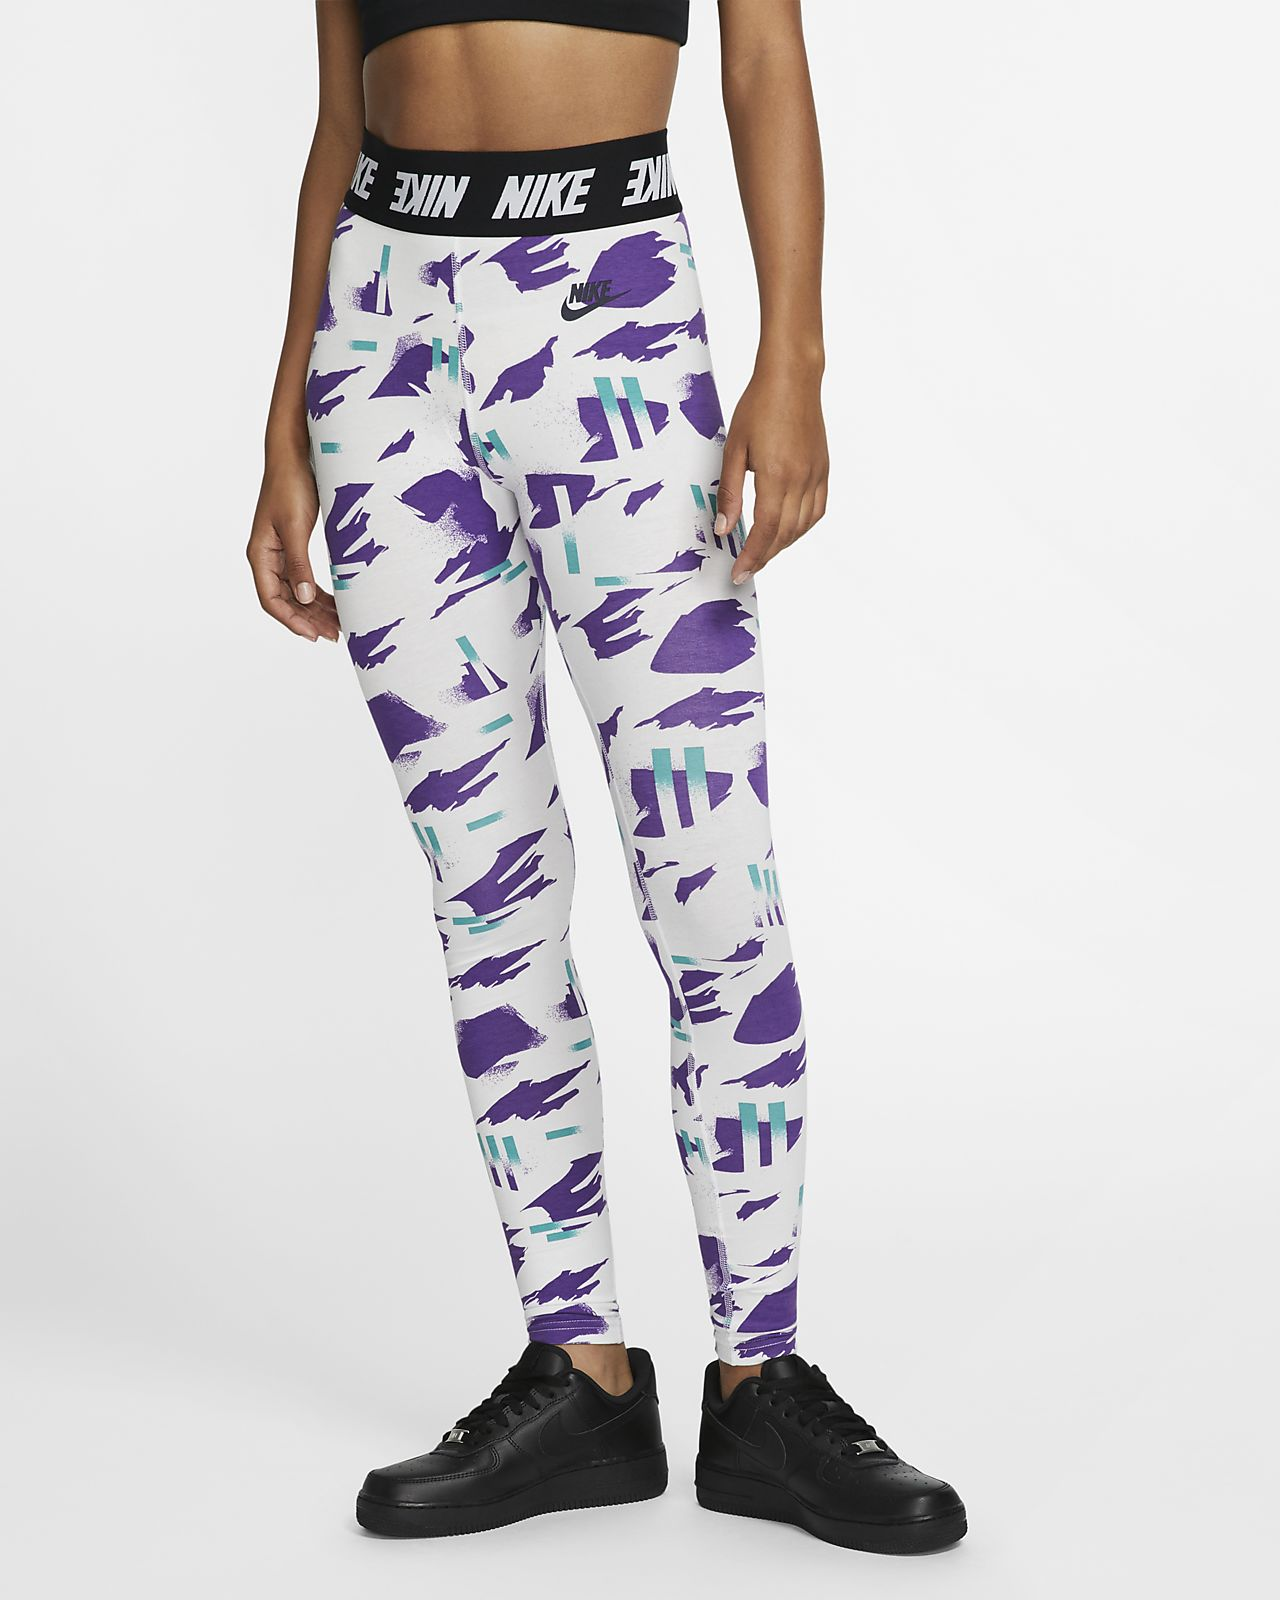 Nike Sportswear Women's Printed High-Rise Leggings